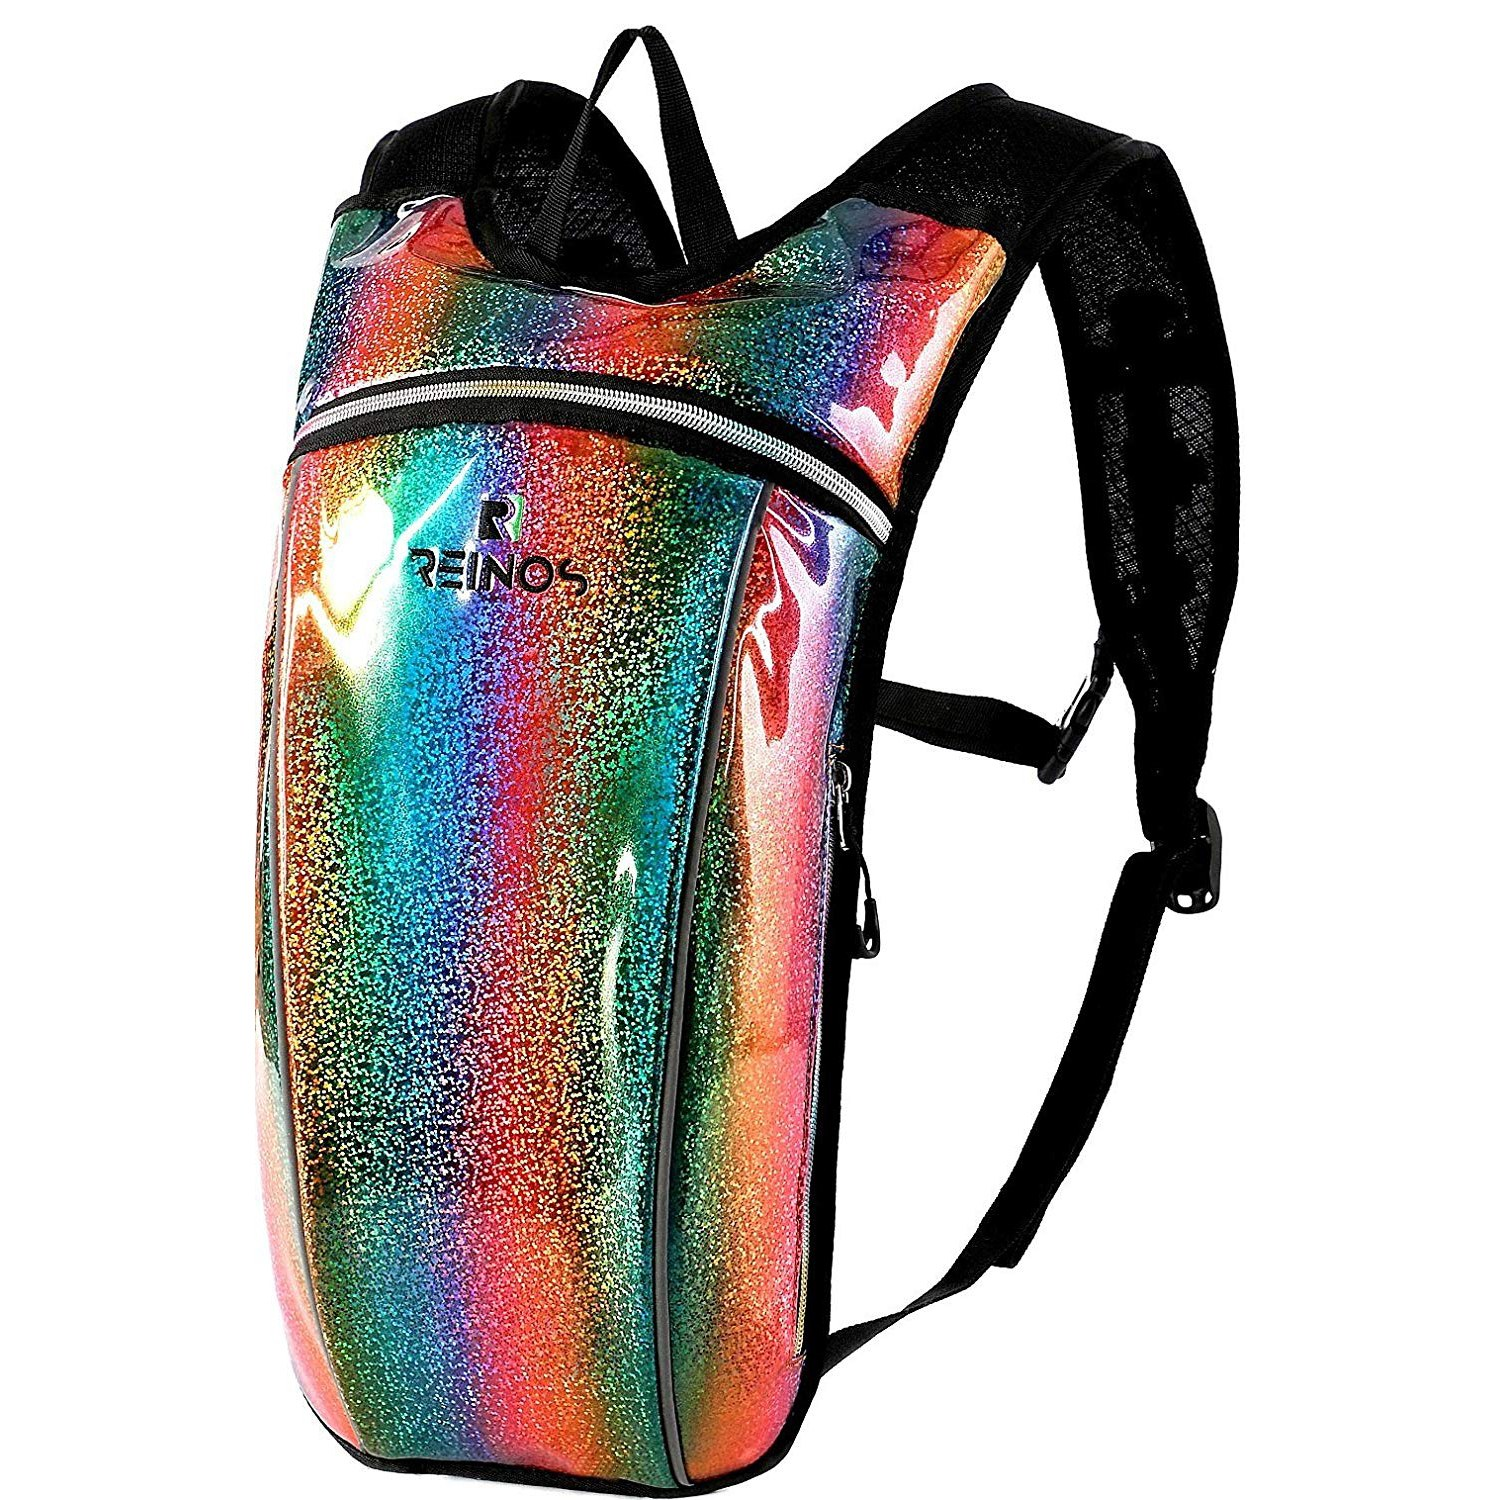 REINOS Hydration Backpack - Light